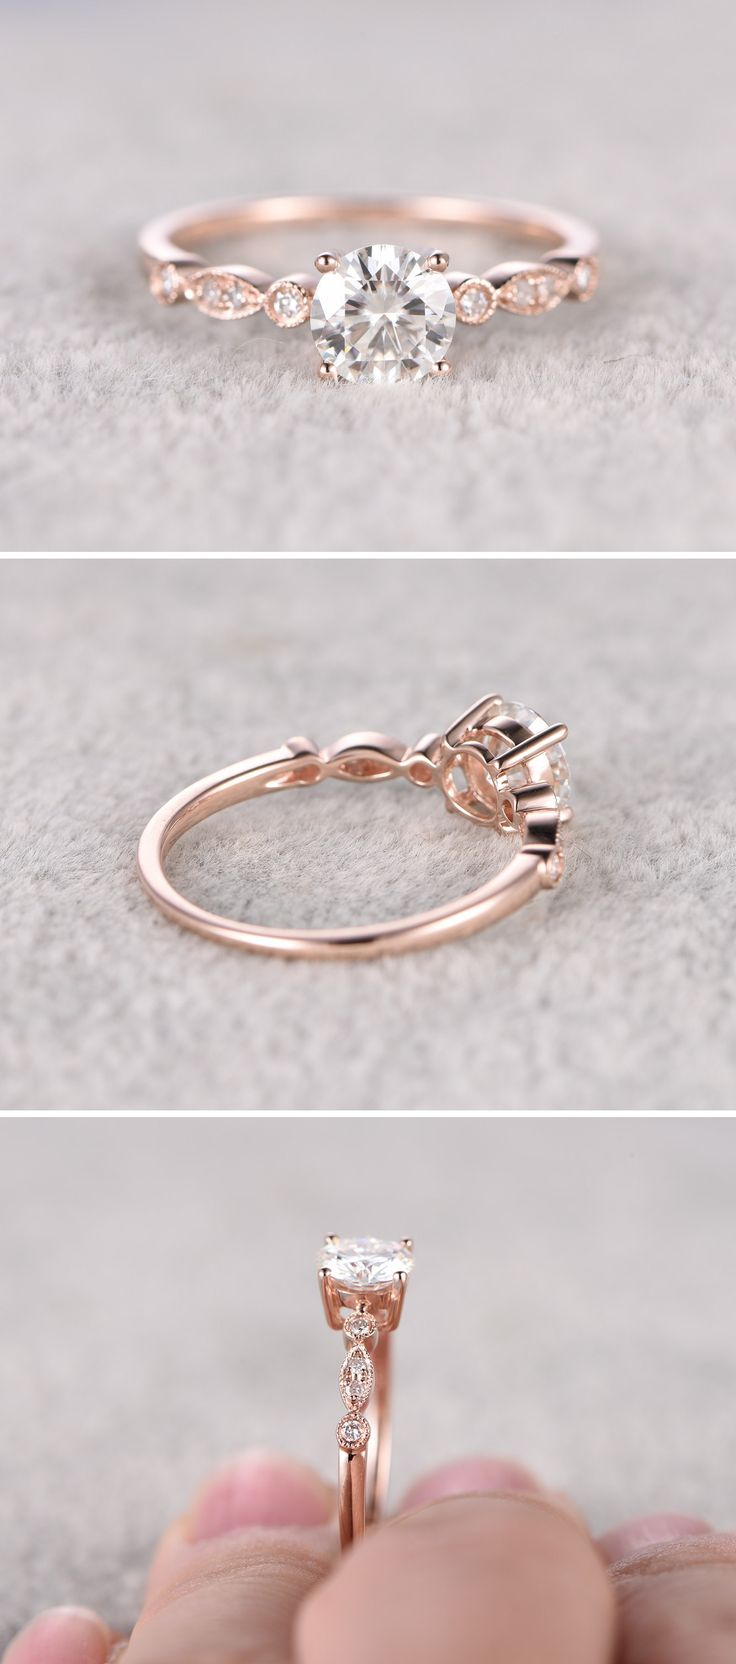 Moissanite in Rose Gold Engagement Ring